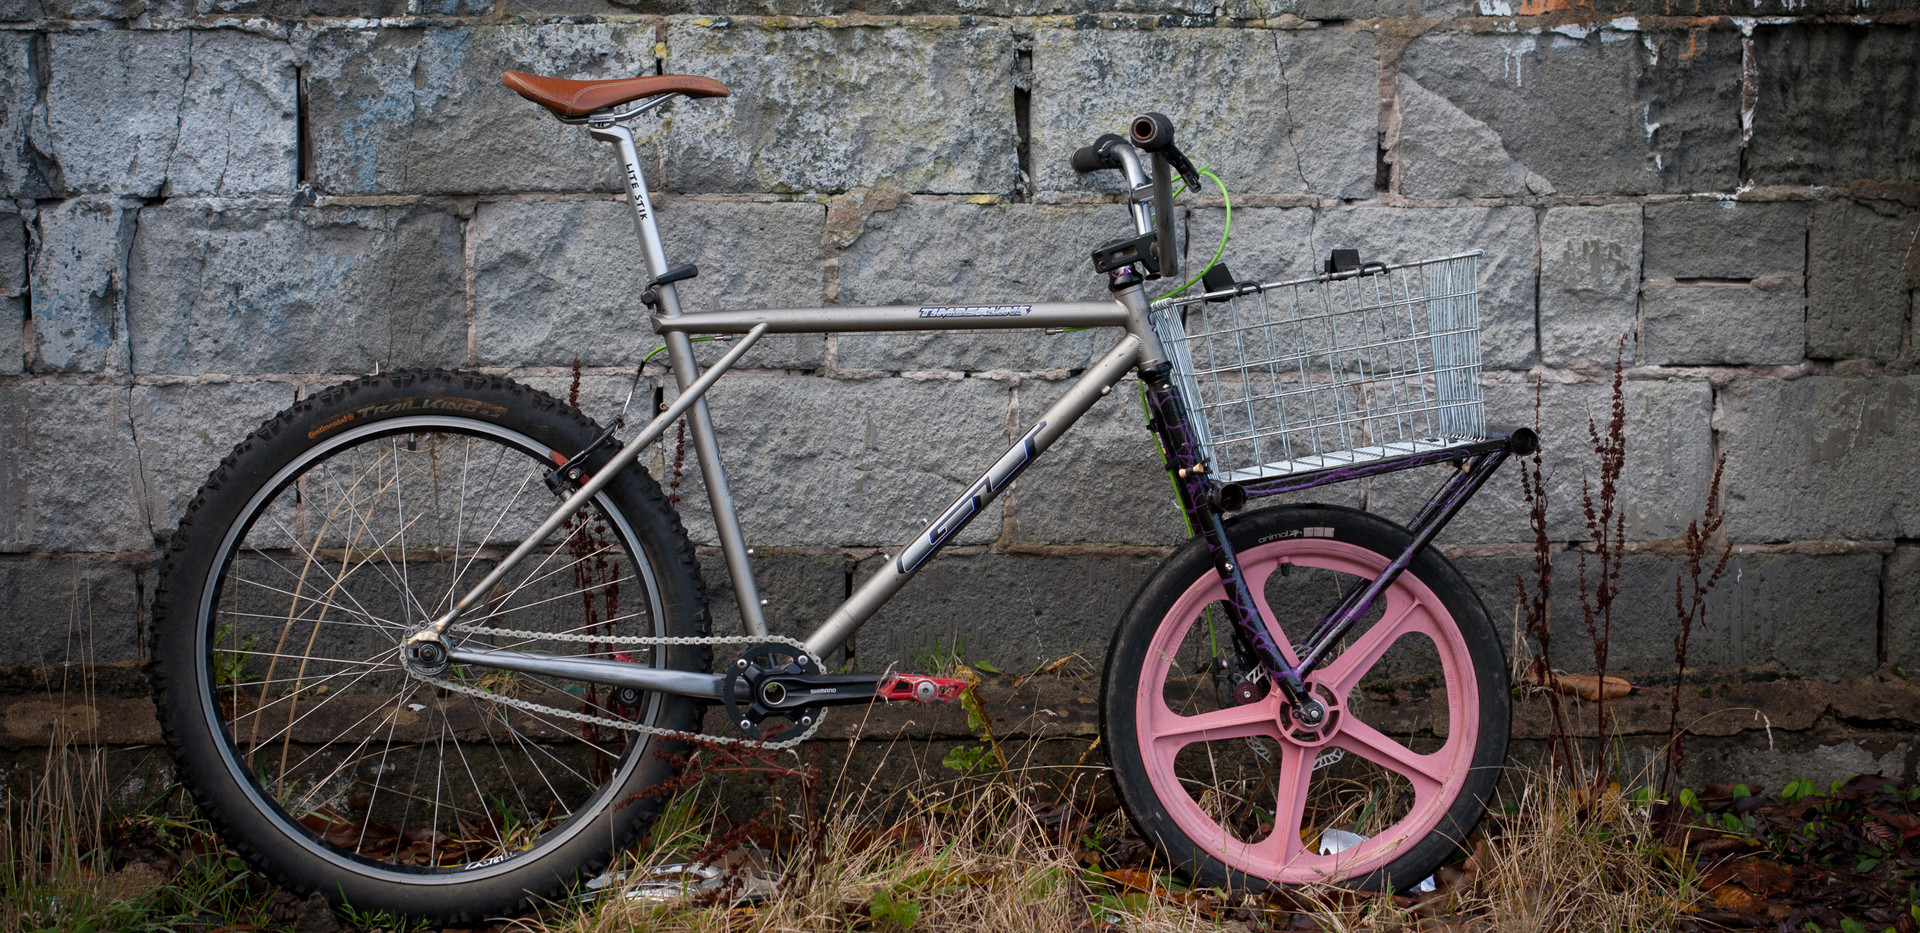 Singlespeed converted GT with modified cargo fork.